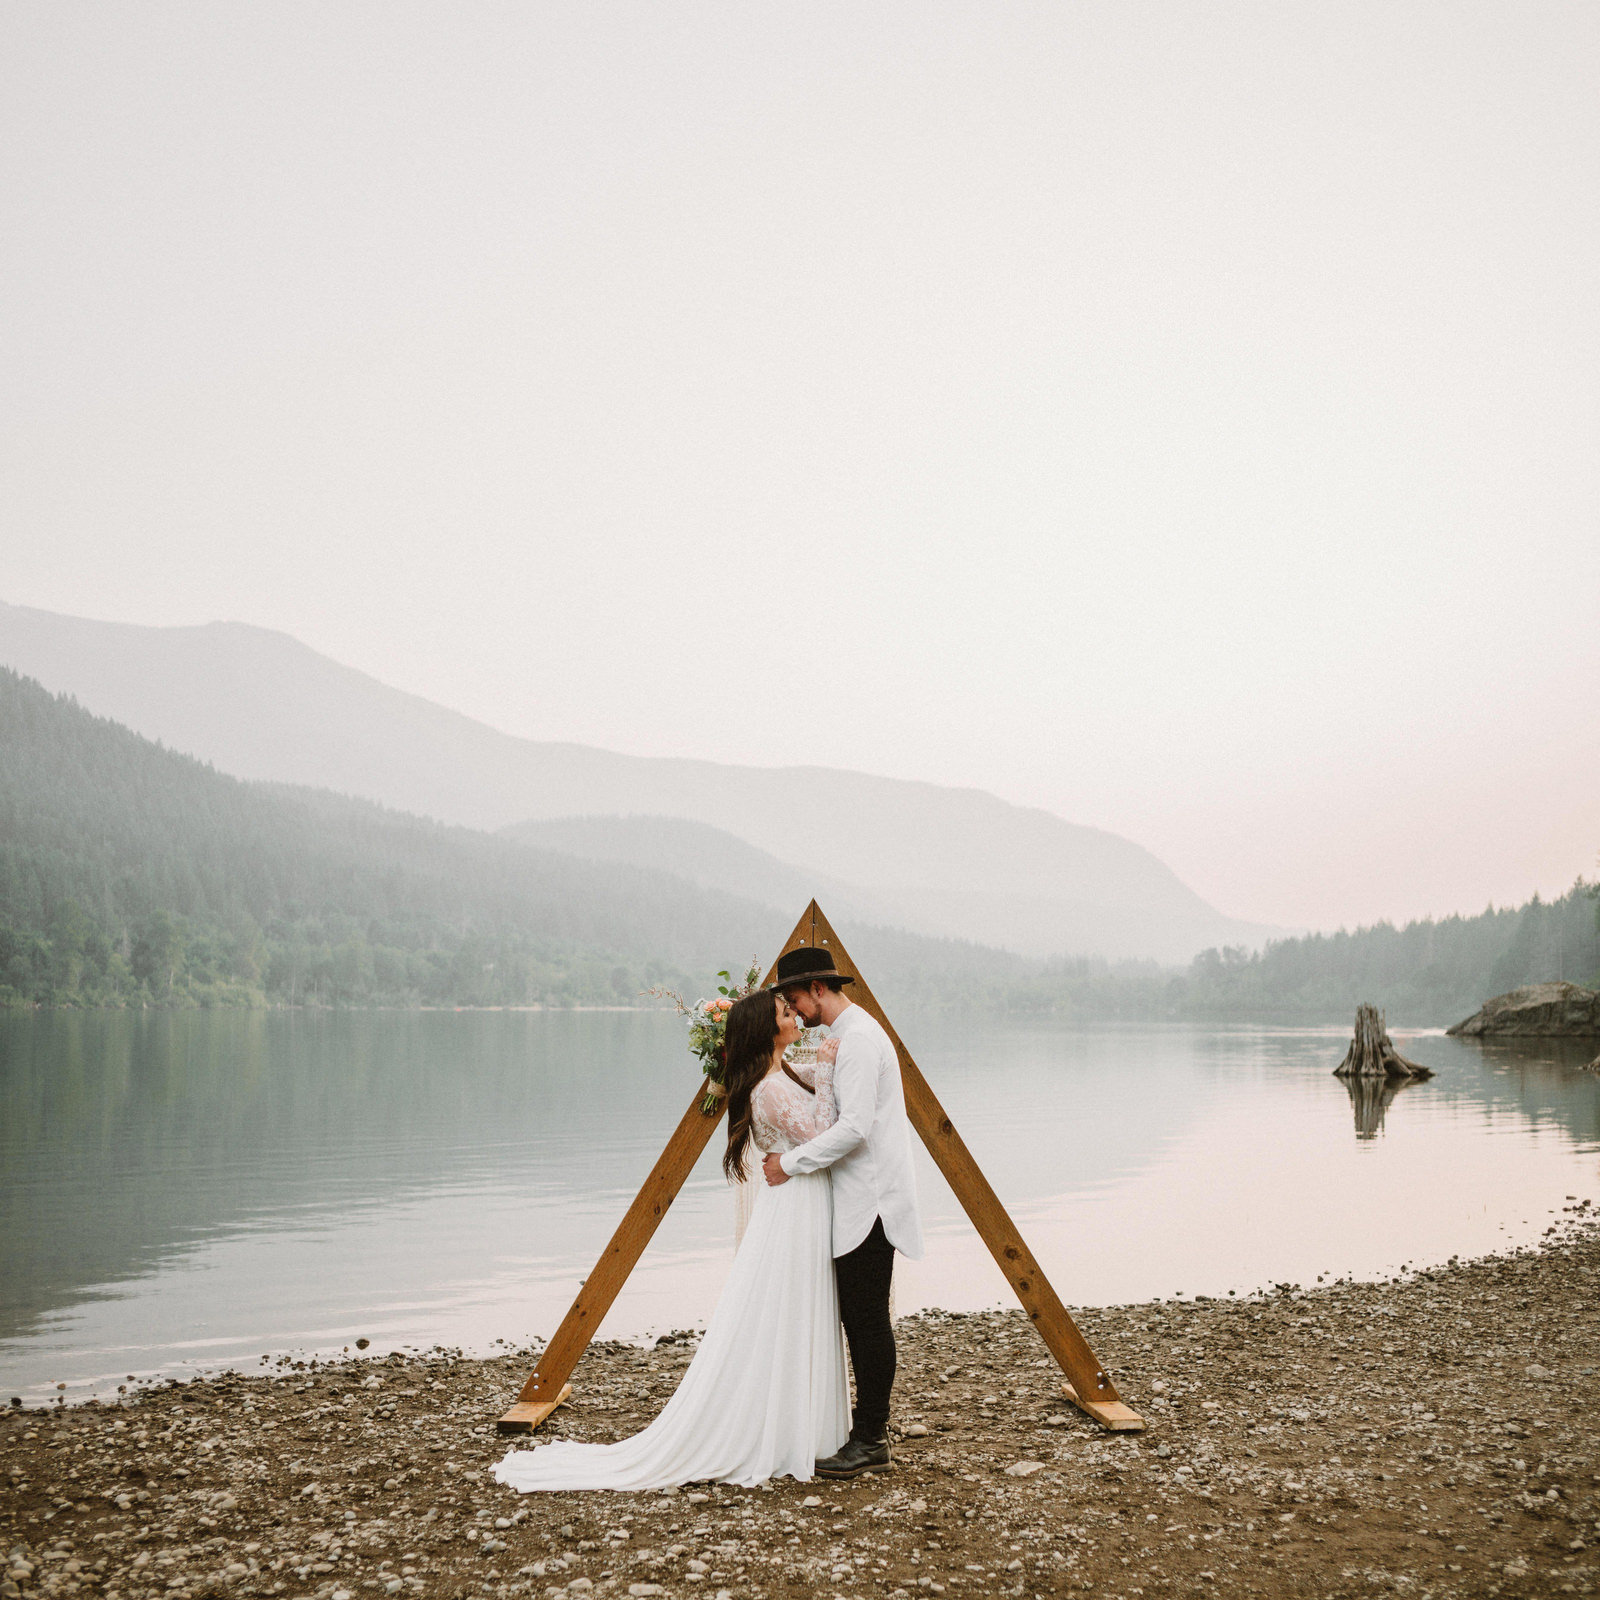 athena-and-camron-seattle-elopement-wedding-benj-haisch-rattlesnake-lake-christian-couple-goals68